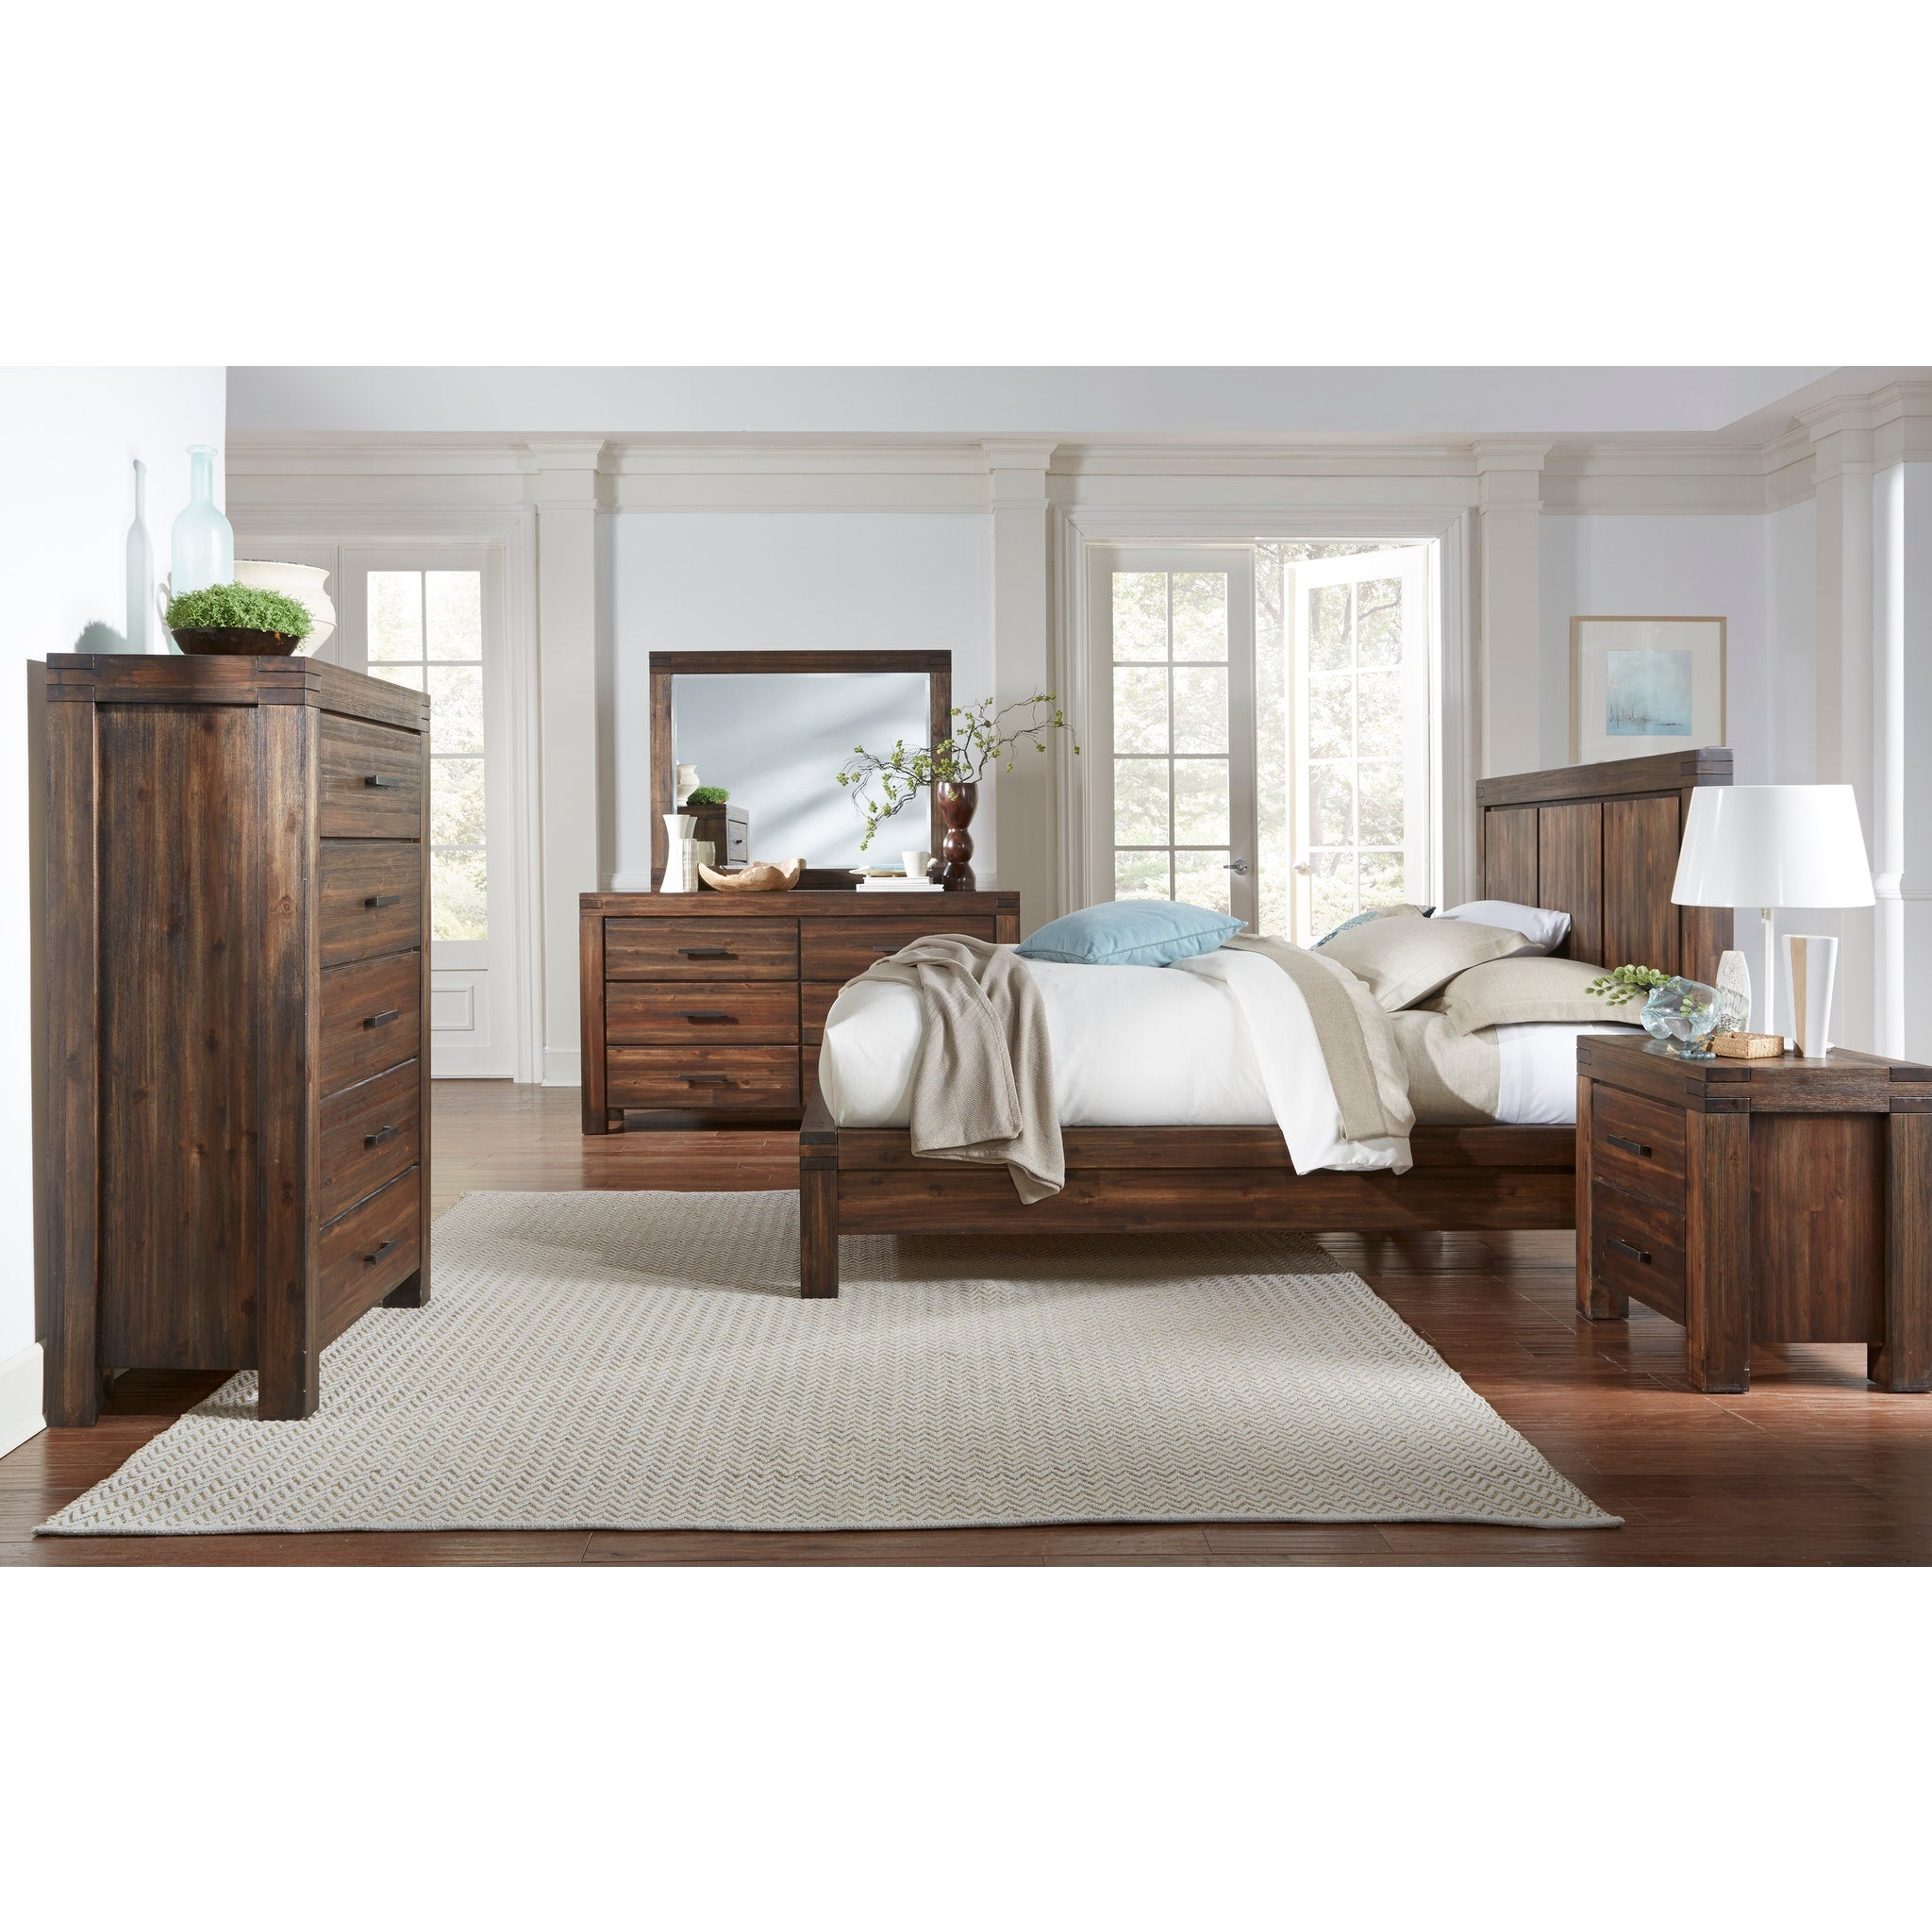 Meadow Six Drawer Solid Wood Dresser in Brick Brown